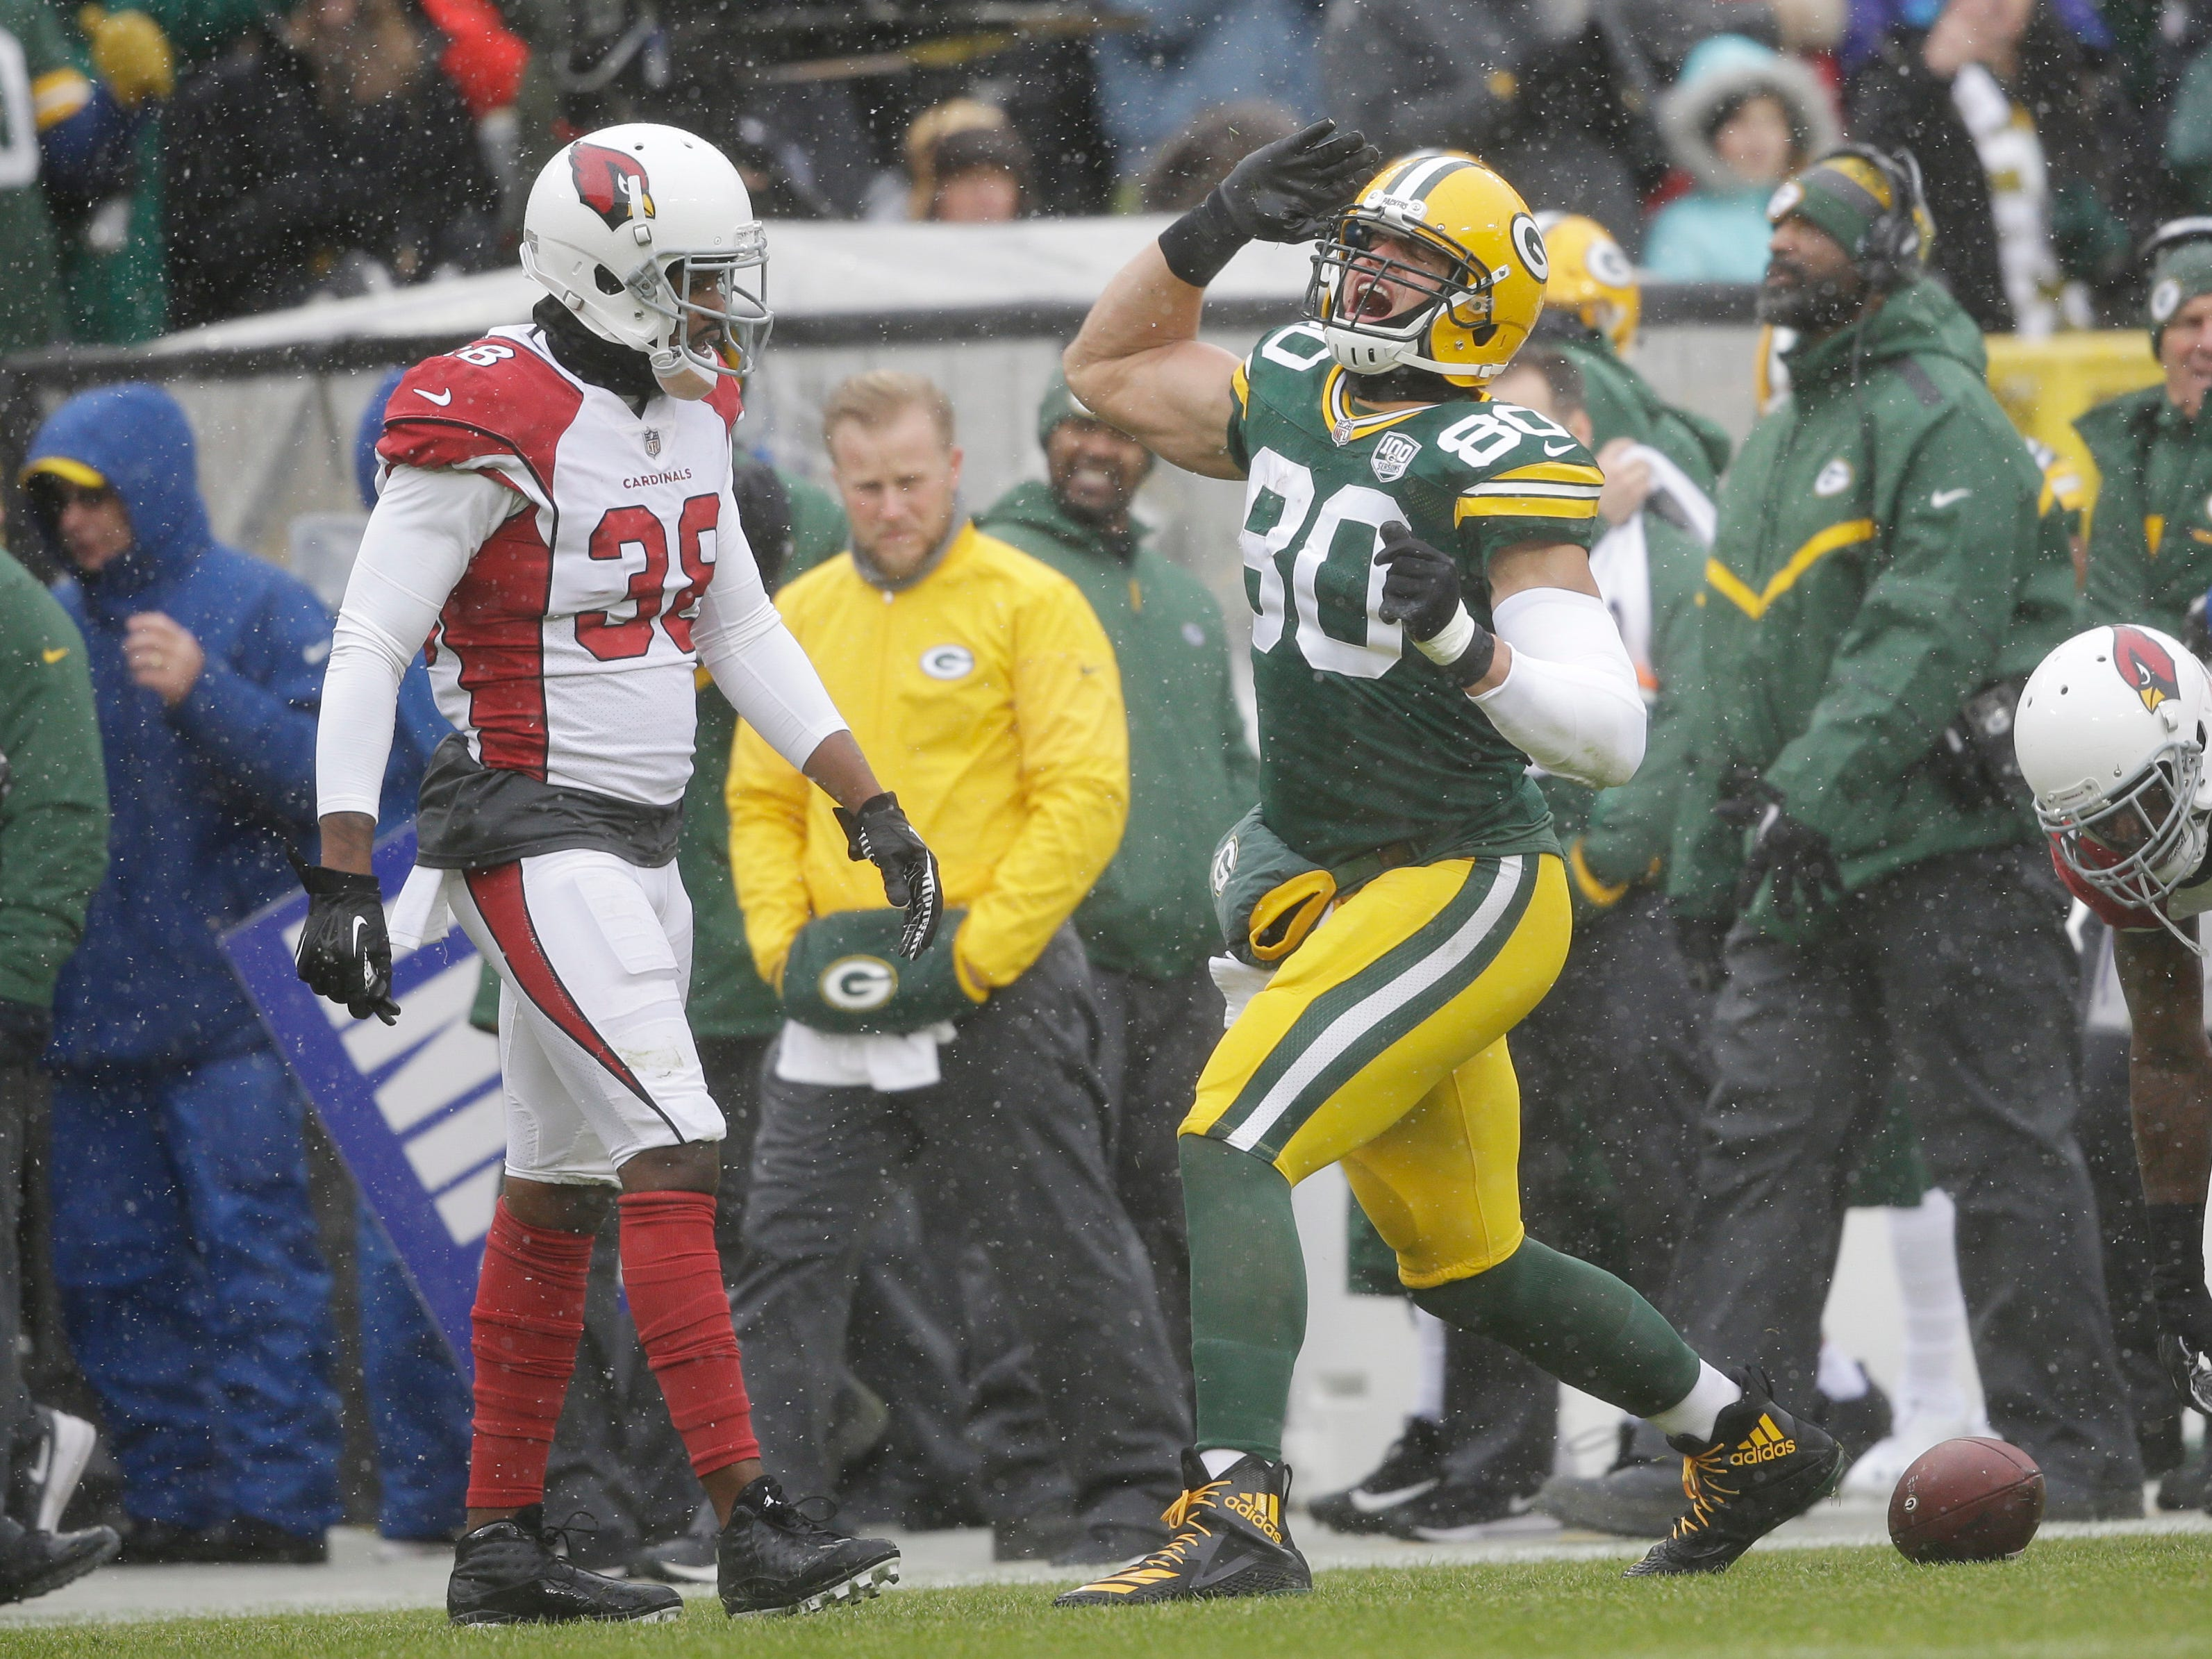 Green Bay Packers tight end Jimmy Graham signals first down during the first half of an NFL football game against the Arizona Cardinals Sunday, Dec. 2, 2018, in Green Bay, Wis. (AP Photo/Jeffrey Phelps)